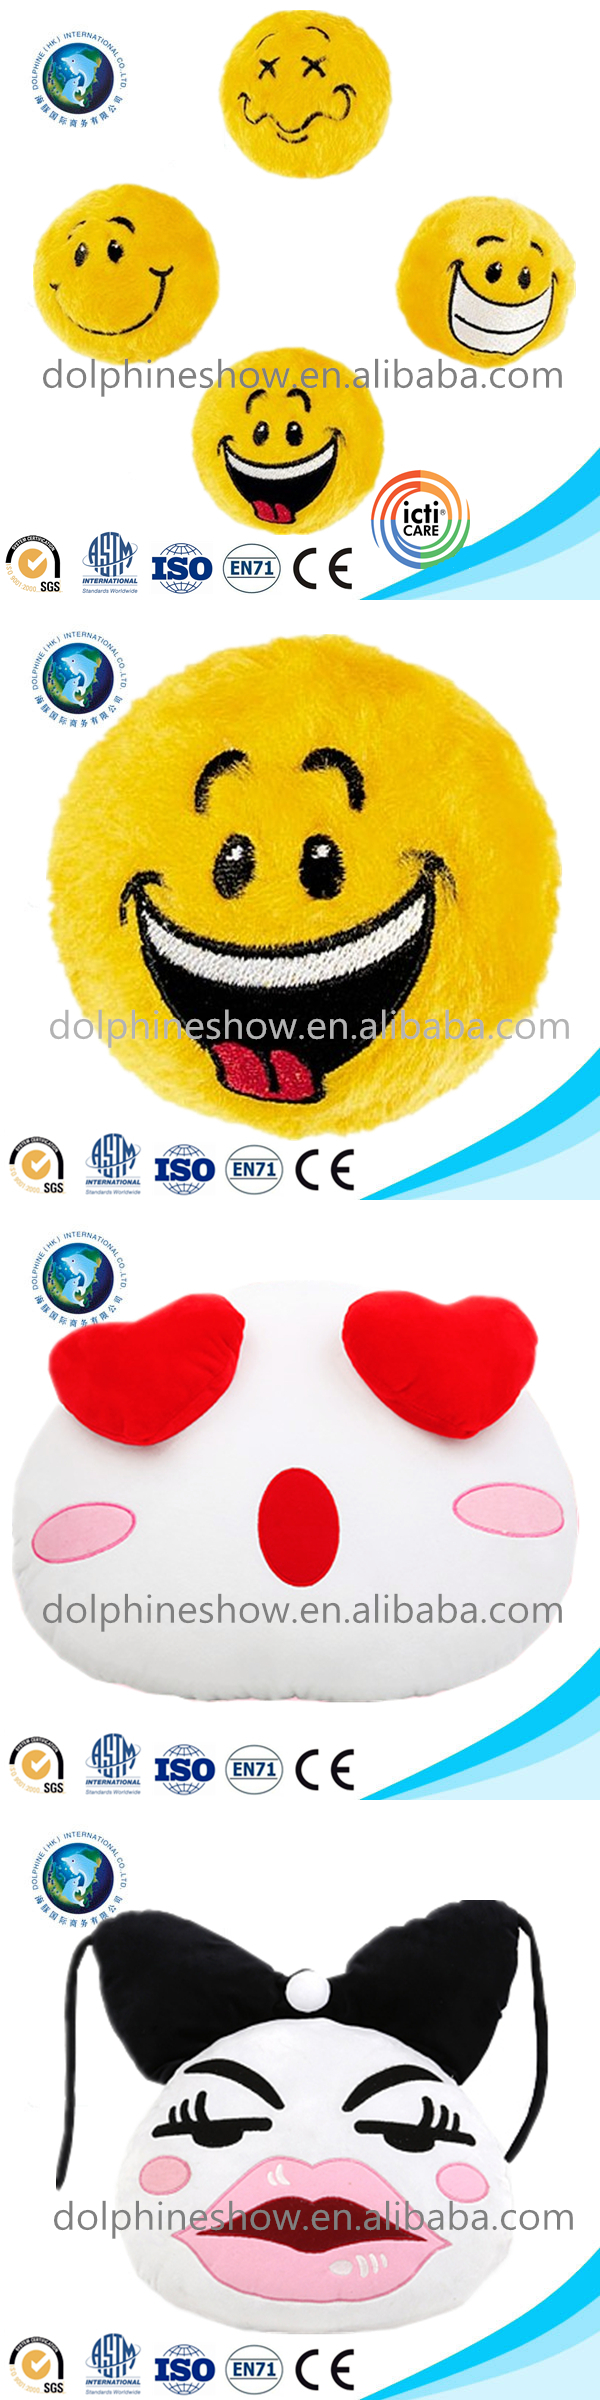 Cute heart design cheap plush emoji pillow cheap promotional stuffed soft plush emoji emoticon